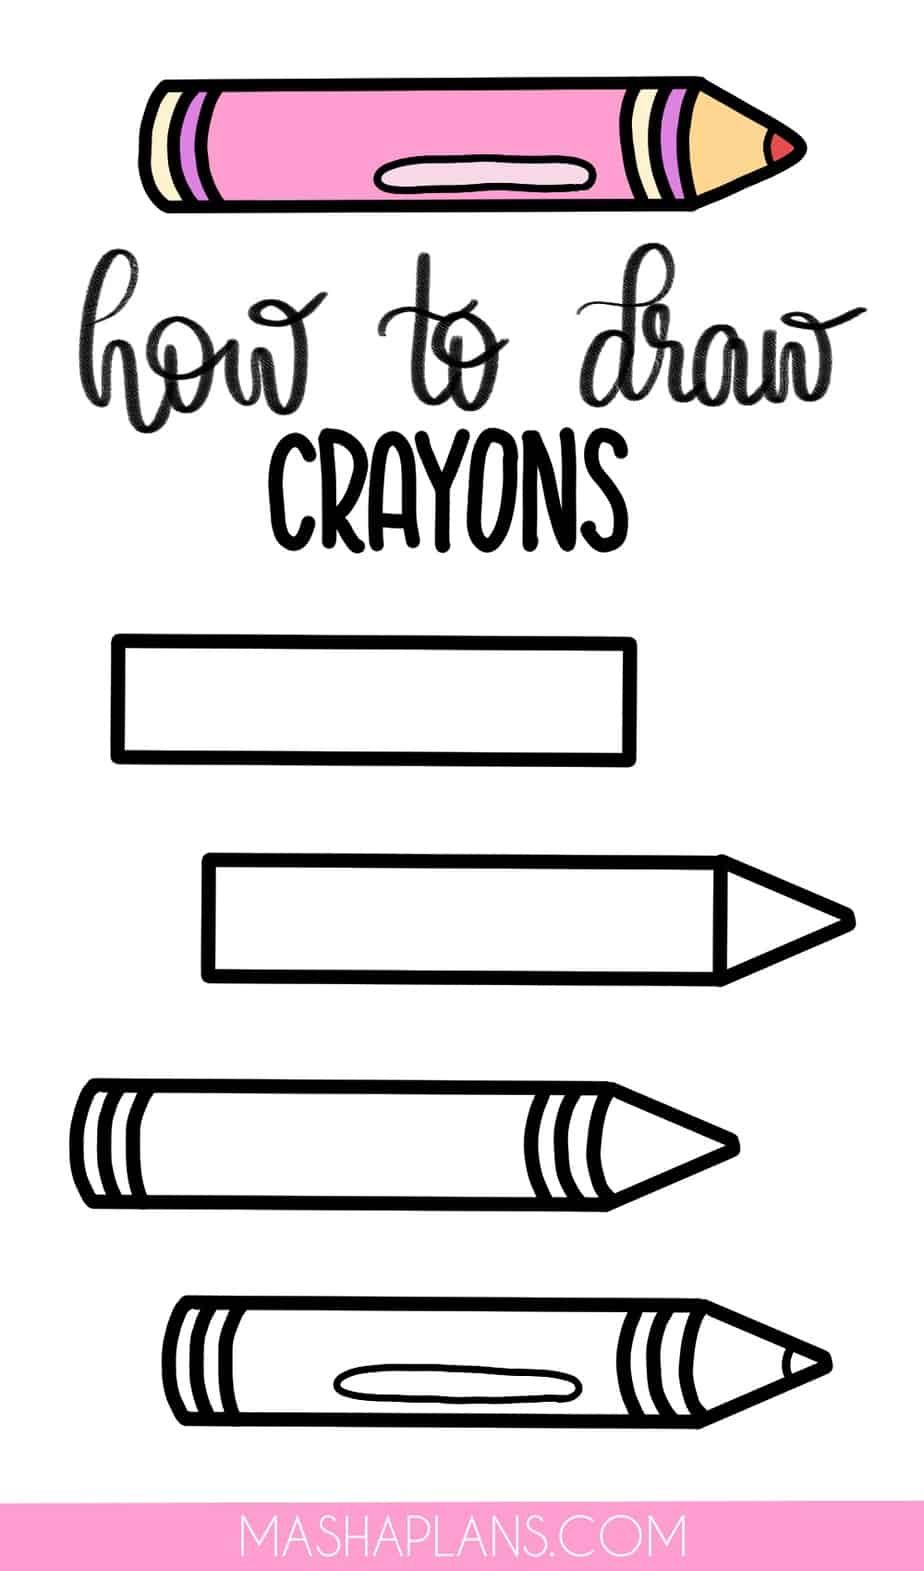 Cute and Easy Stationery Bullet Journal Doodles, Crayons | Masha Plans